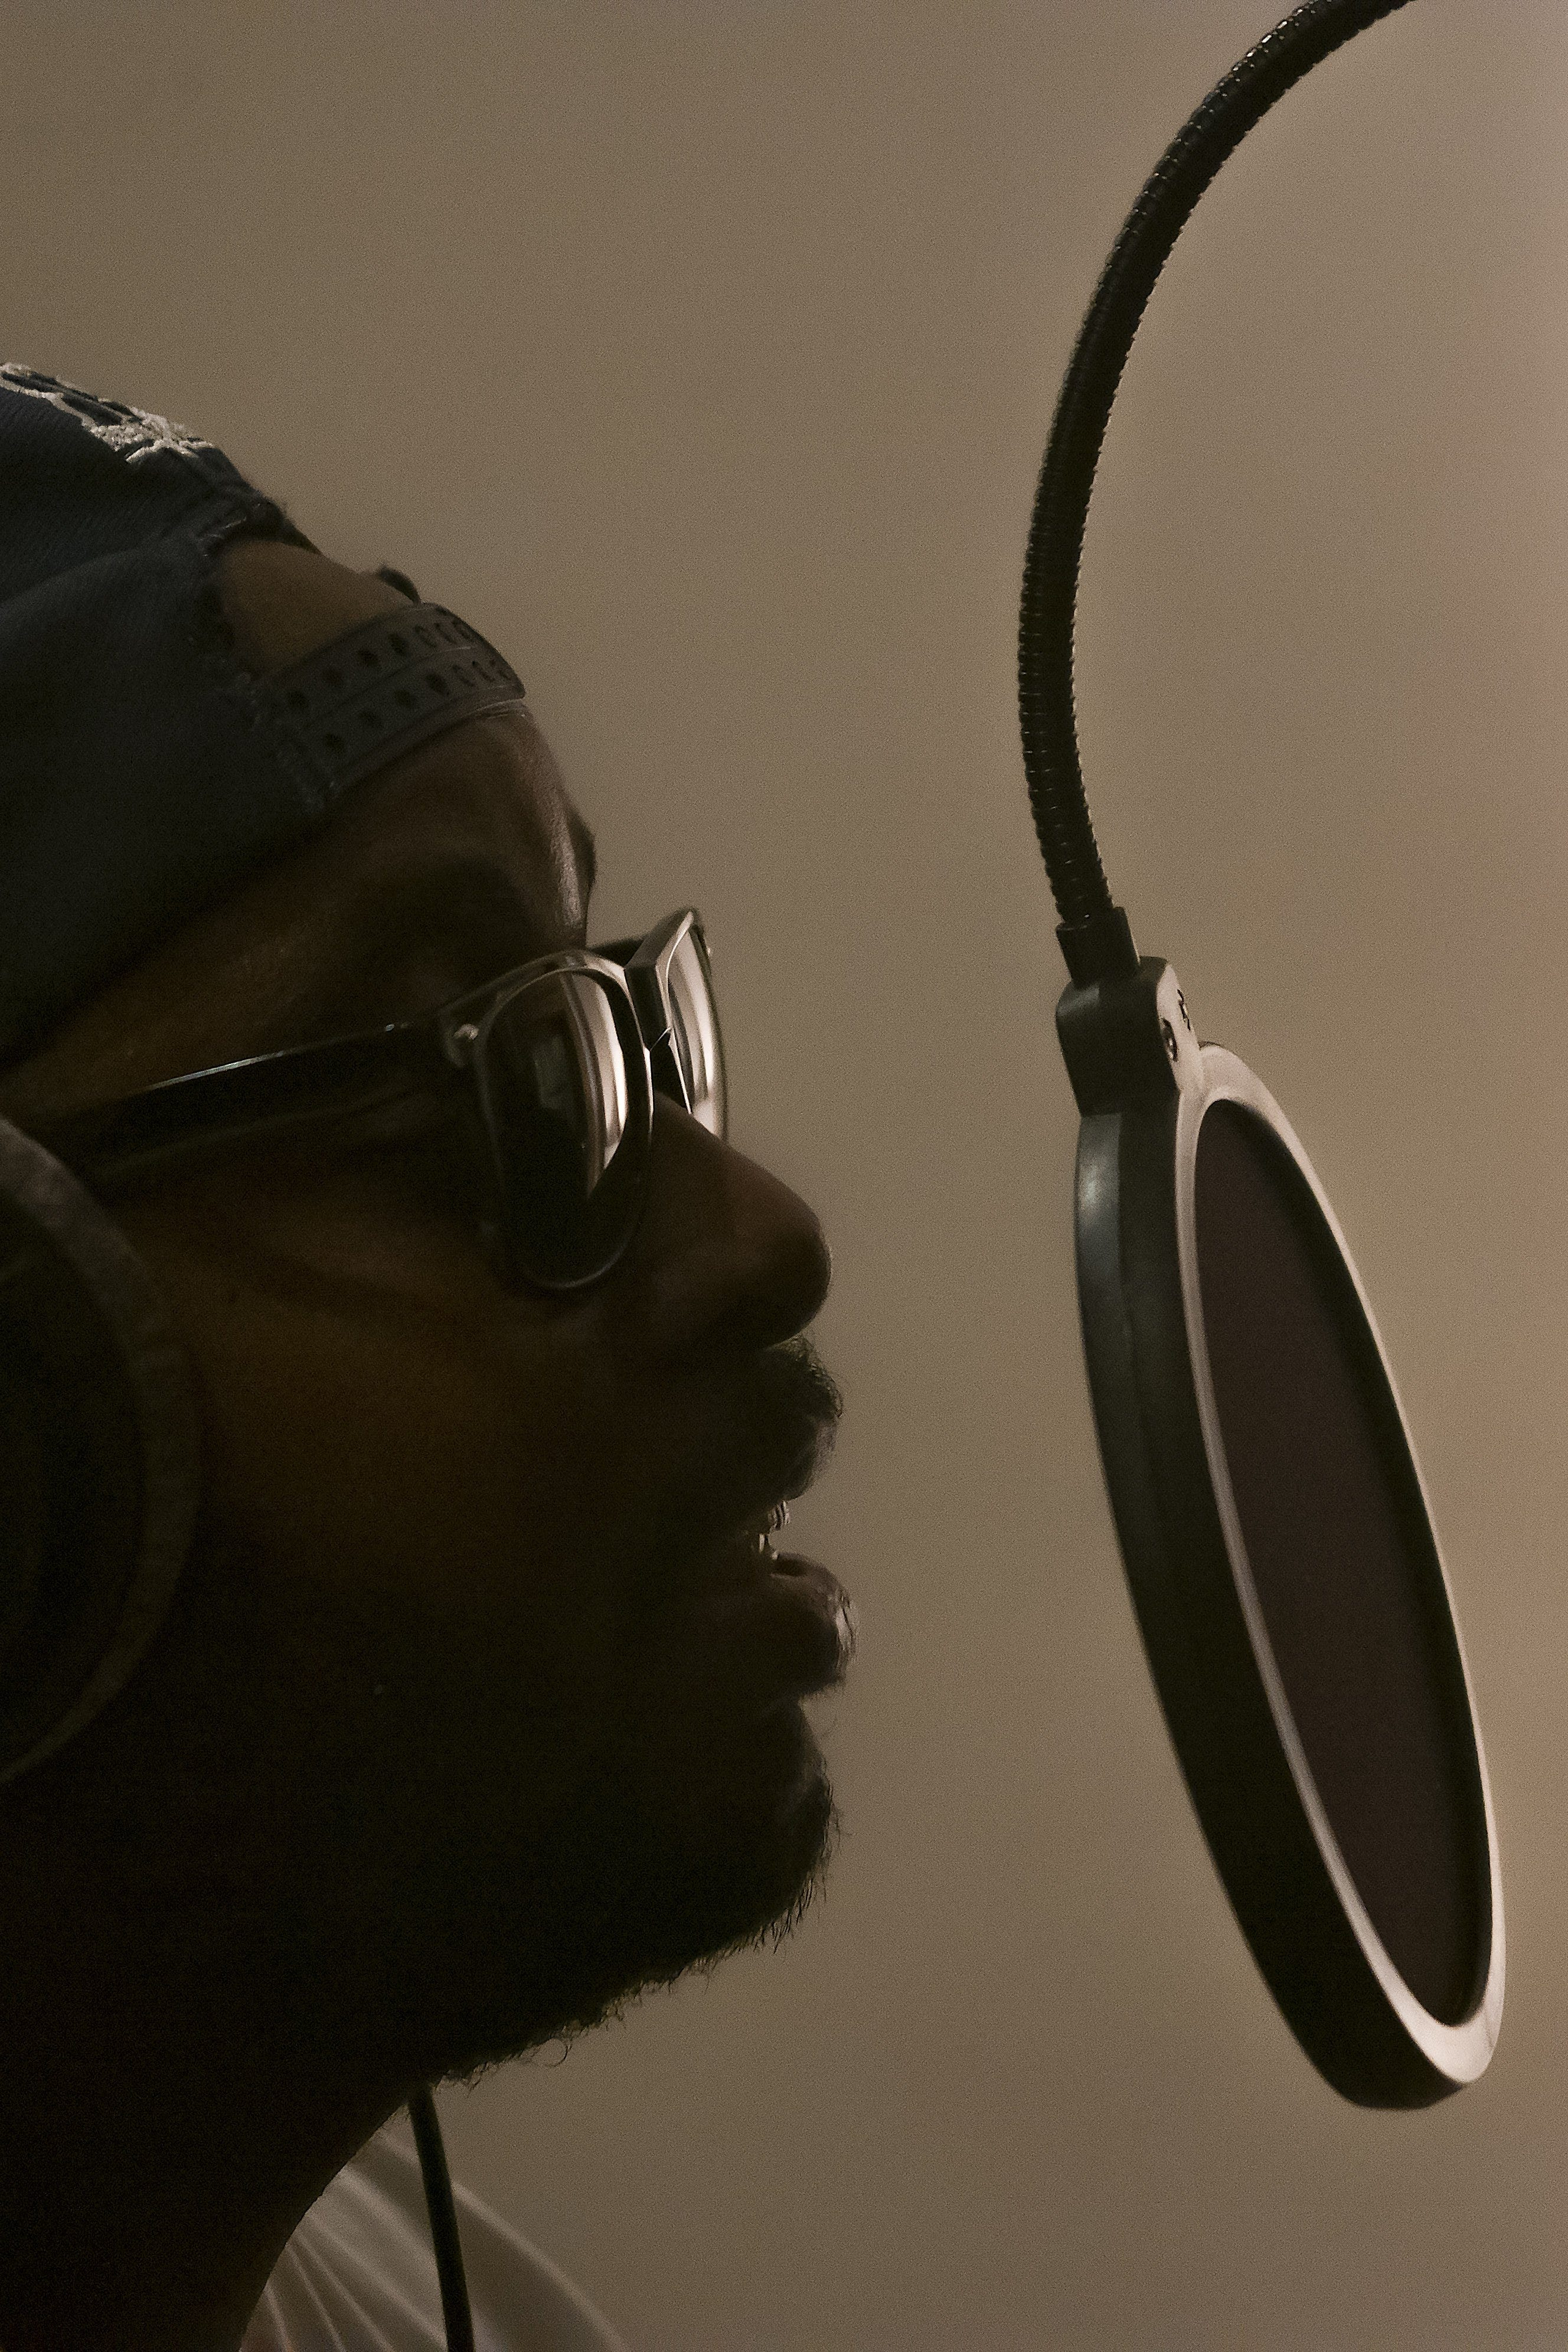 Aspiring musicans: So you want to be a recording artist in Columbus? Here s how.